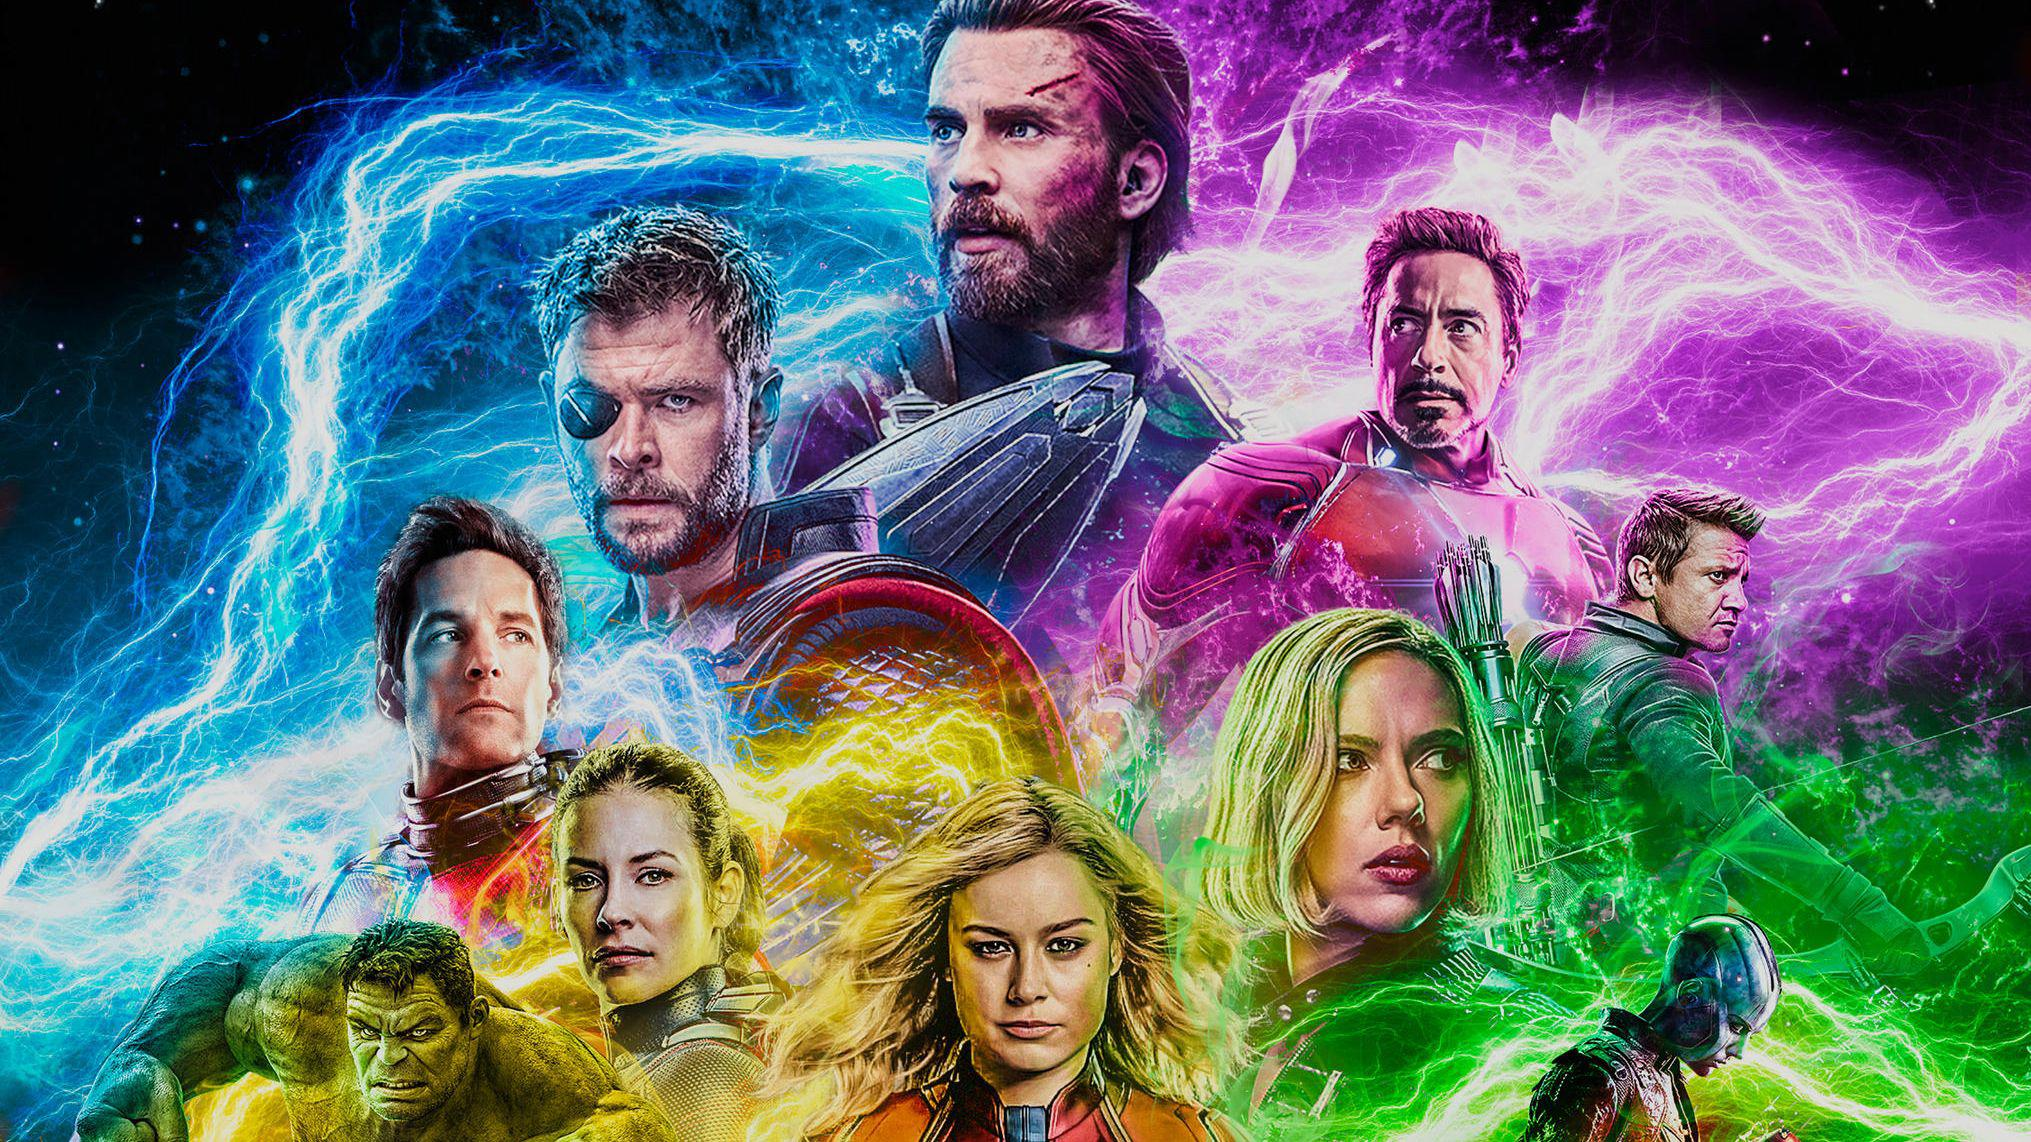 K HDR Avengers Endgame Wallpapers You Need to Make Your Desktop